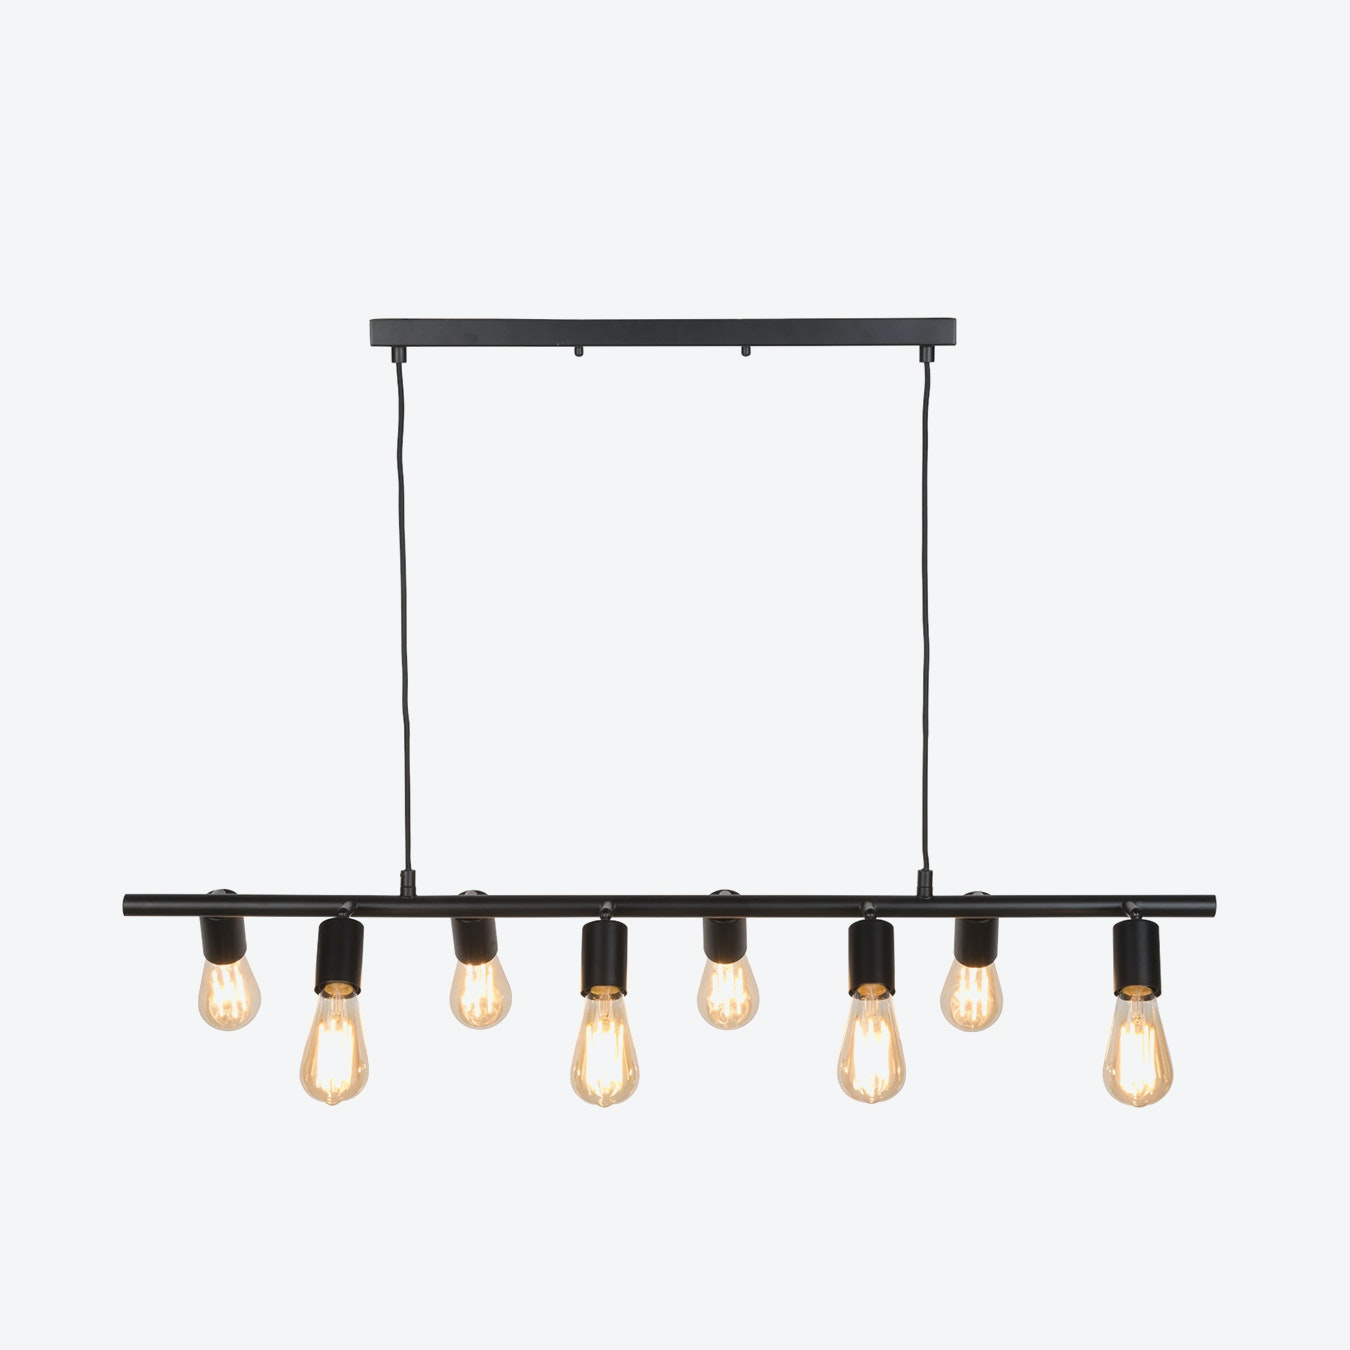 Miami 8 Arms Hanging Lamp Black By It